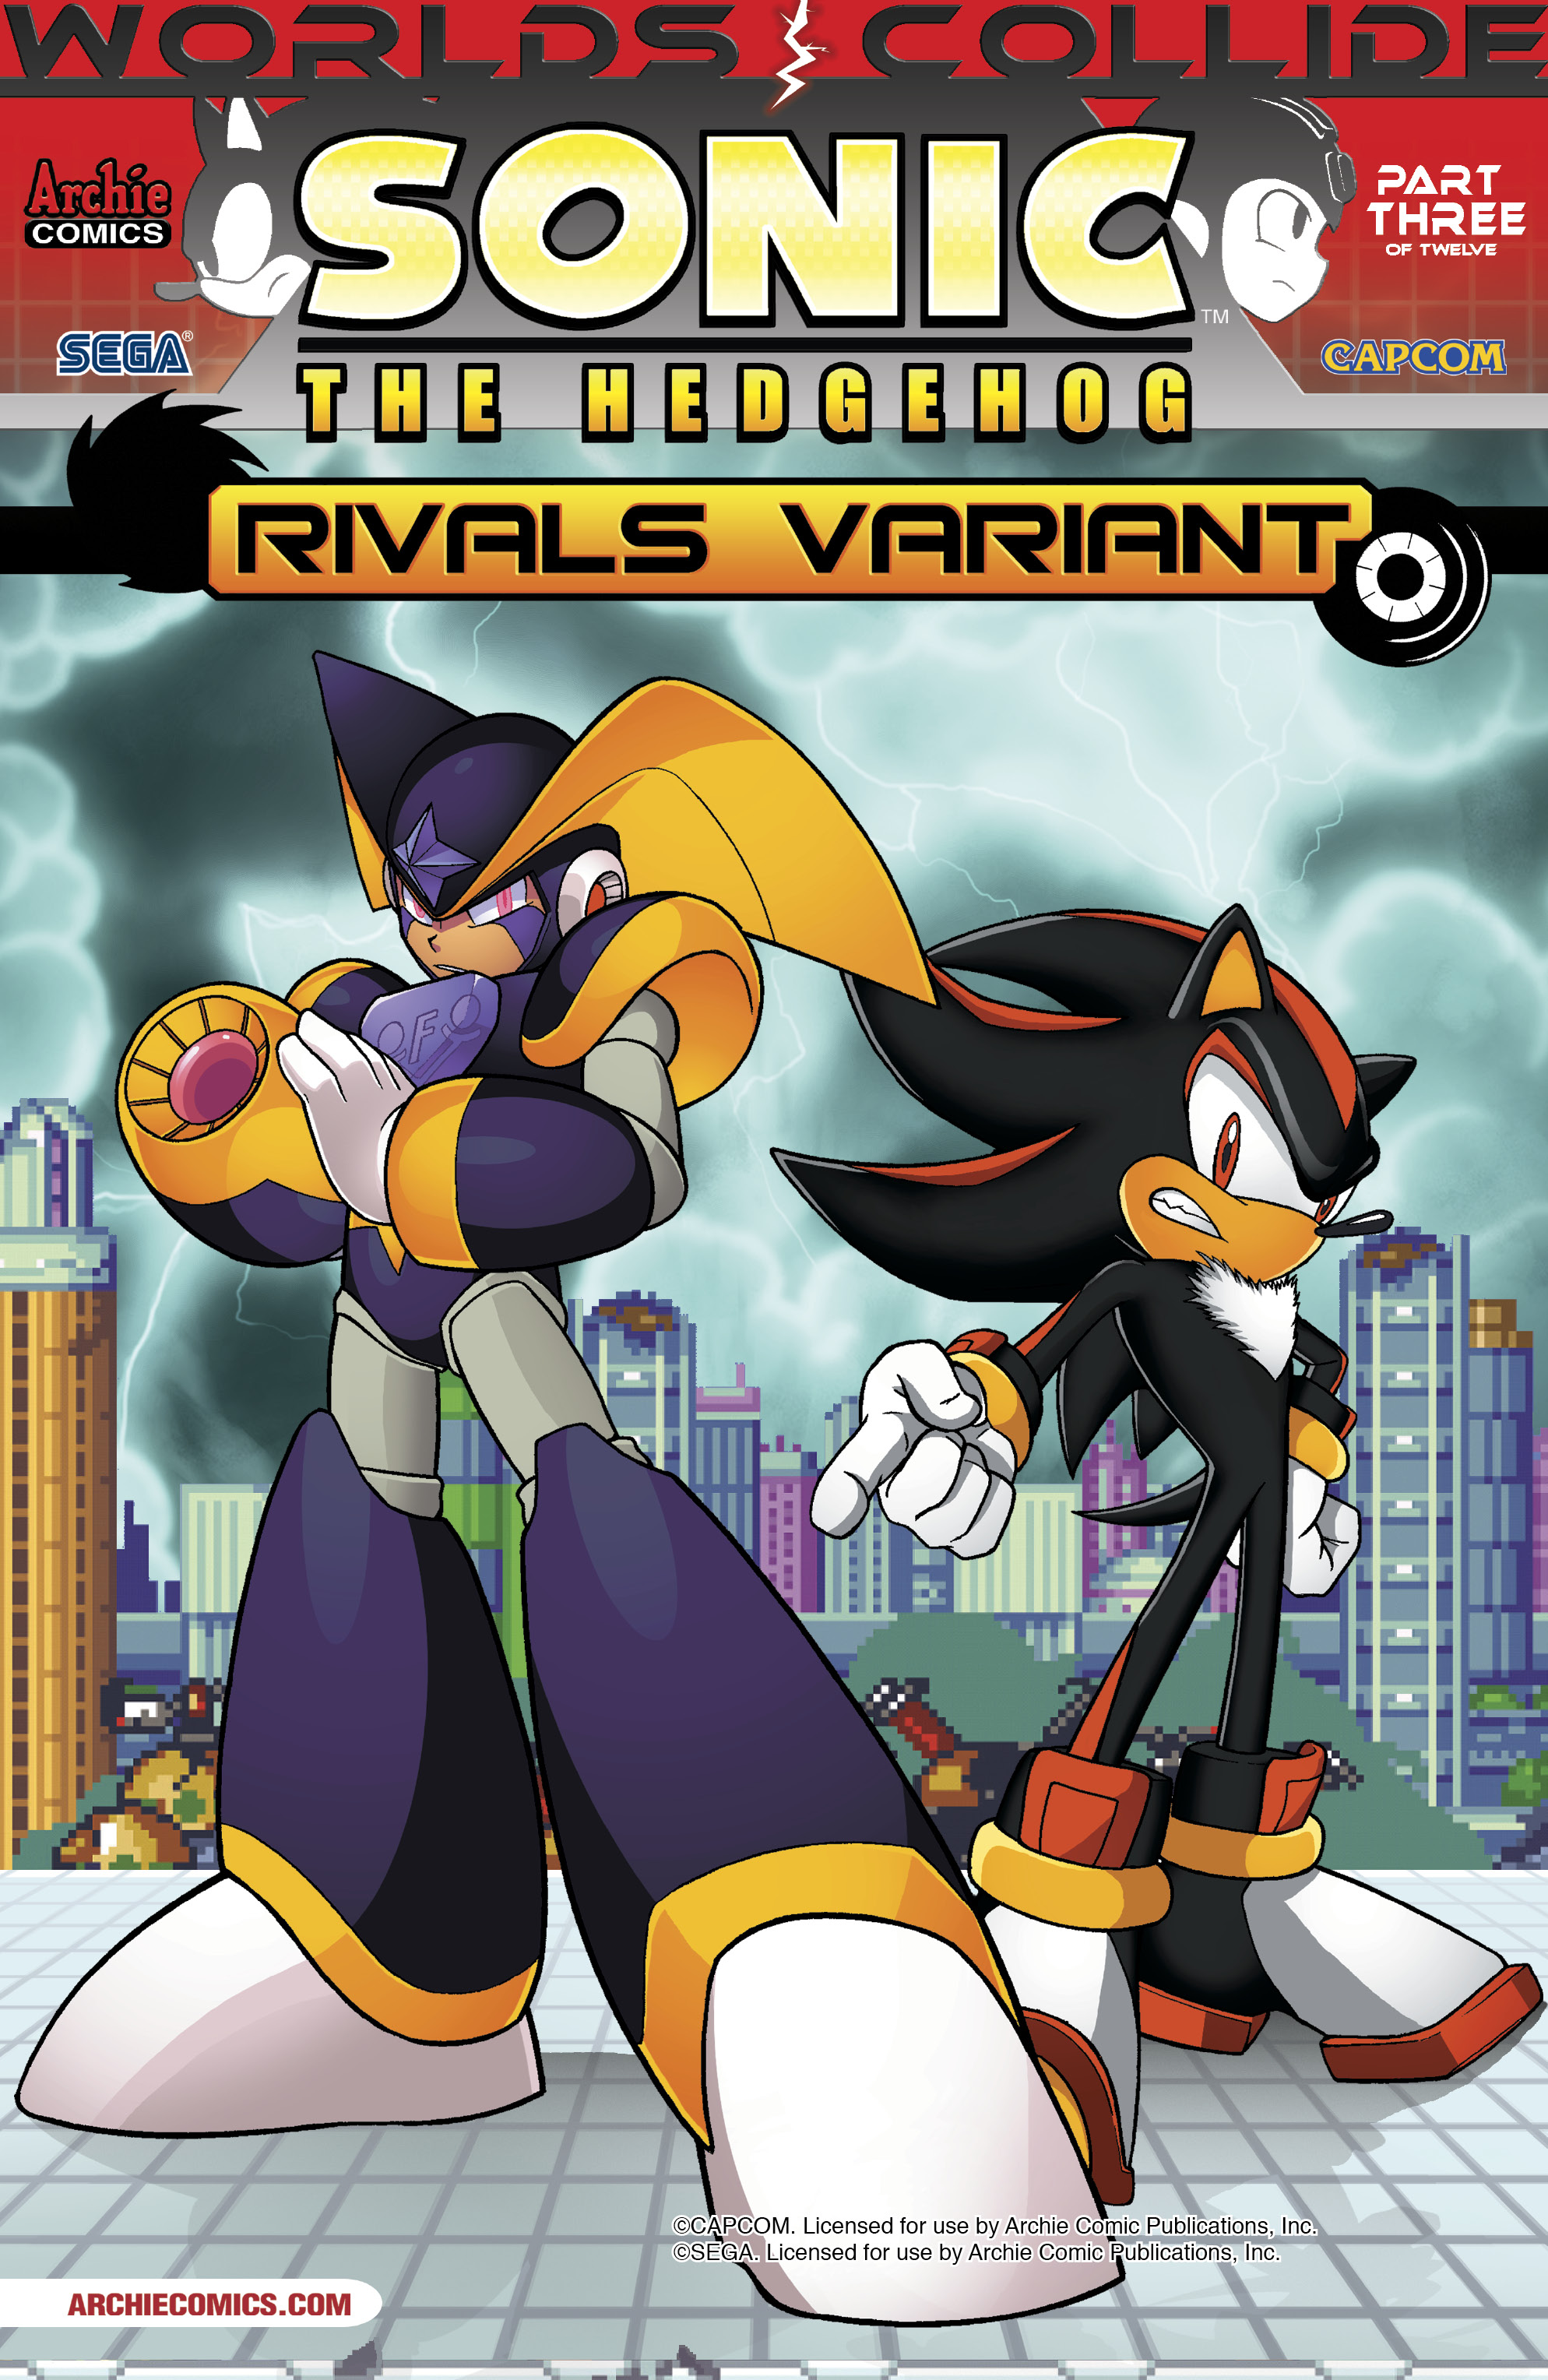 Archie Sonic the Hedgehog Issue 248 Mobius Encyclopaedia